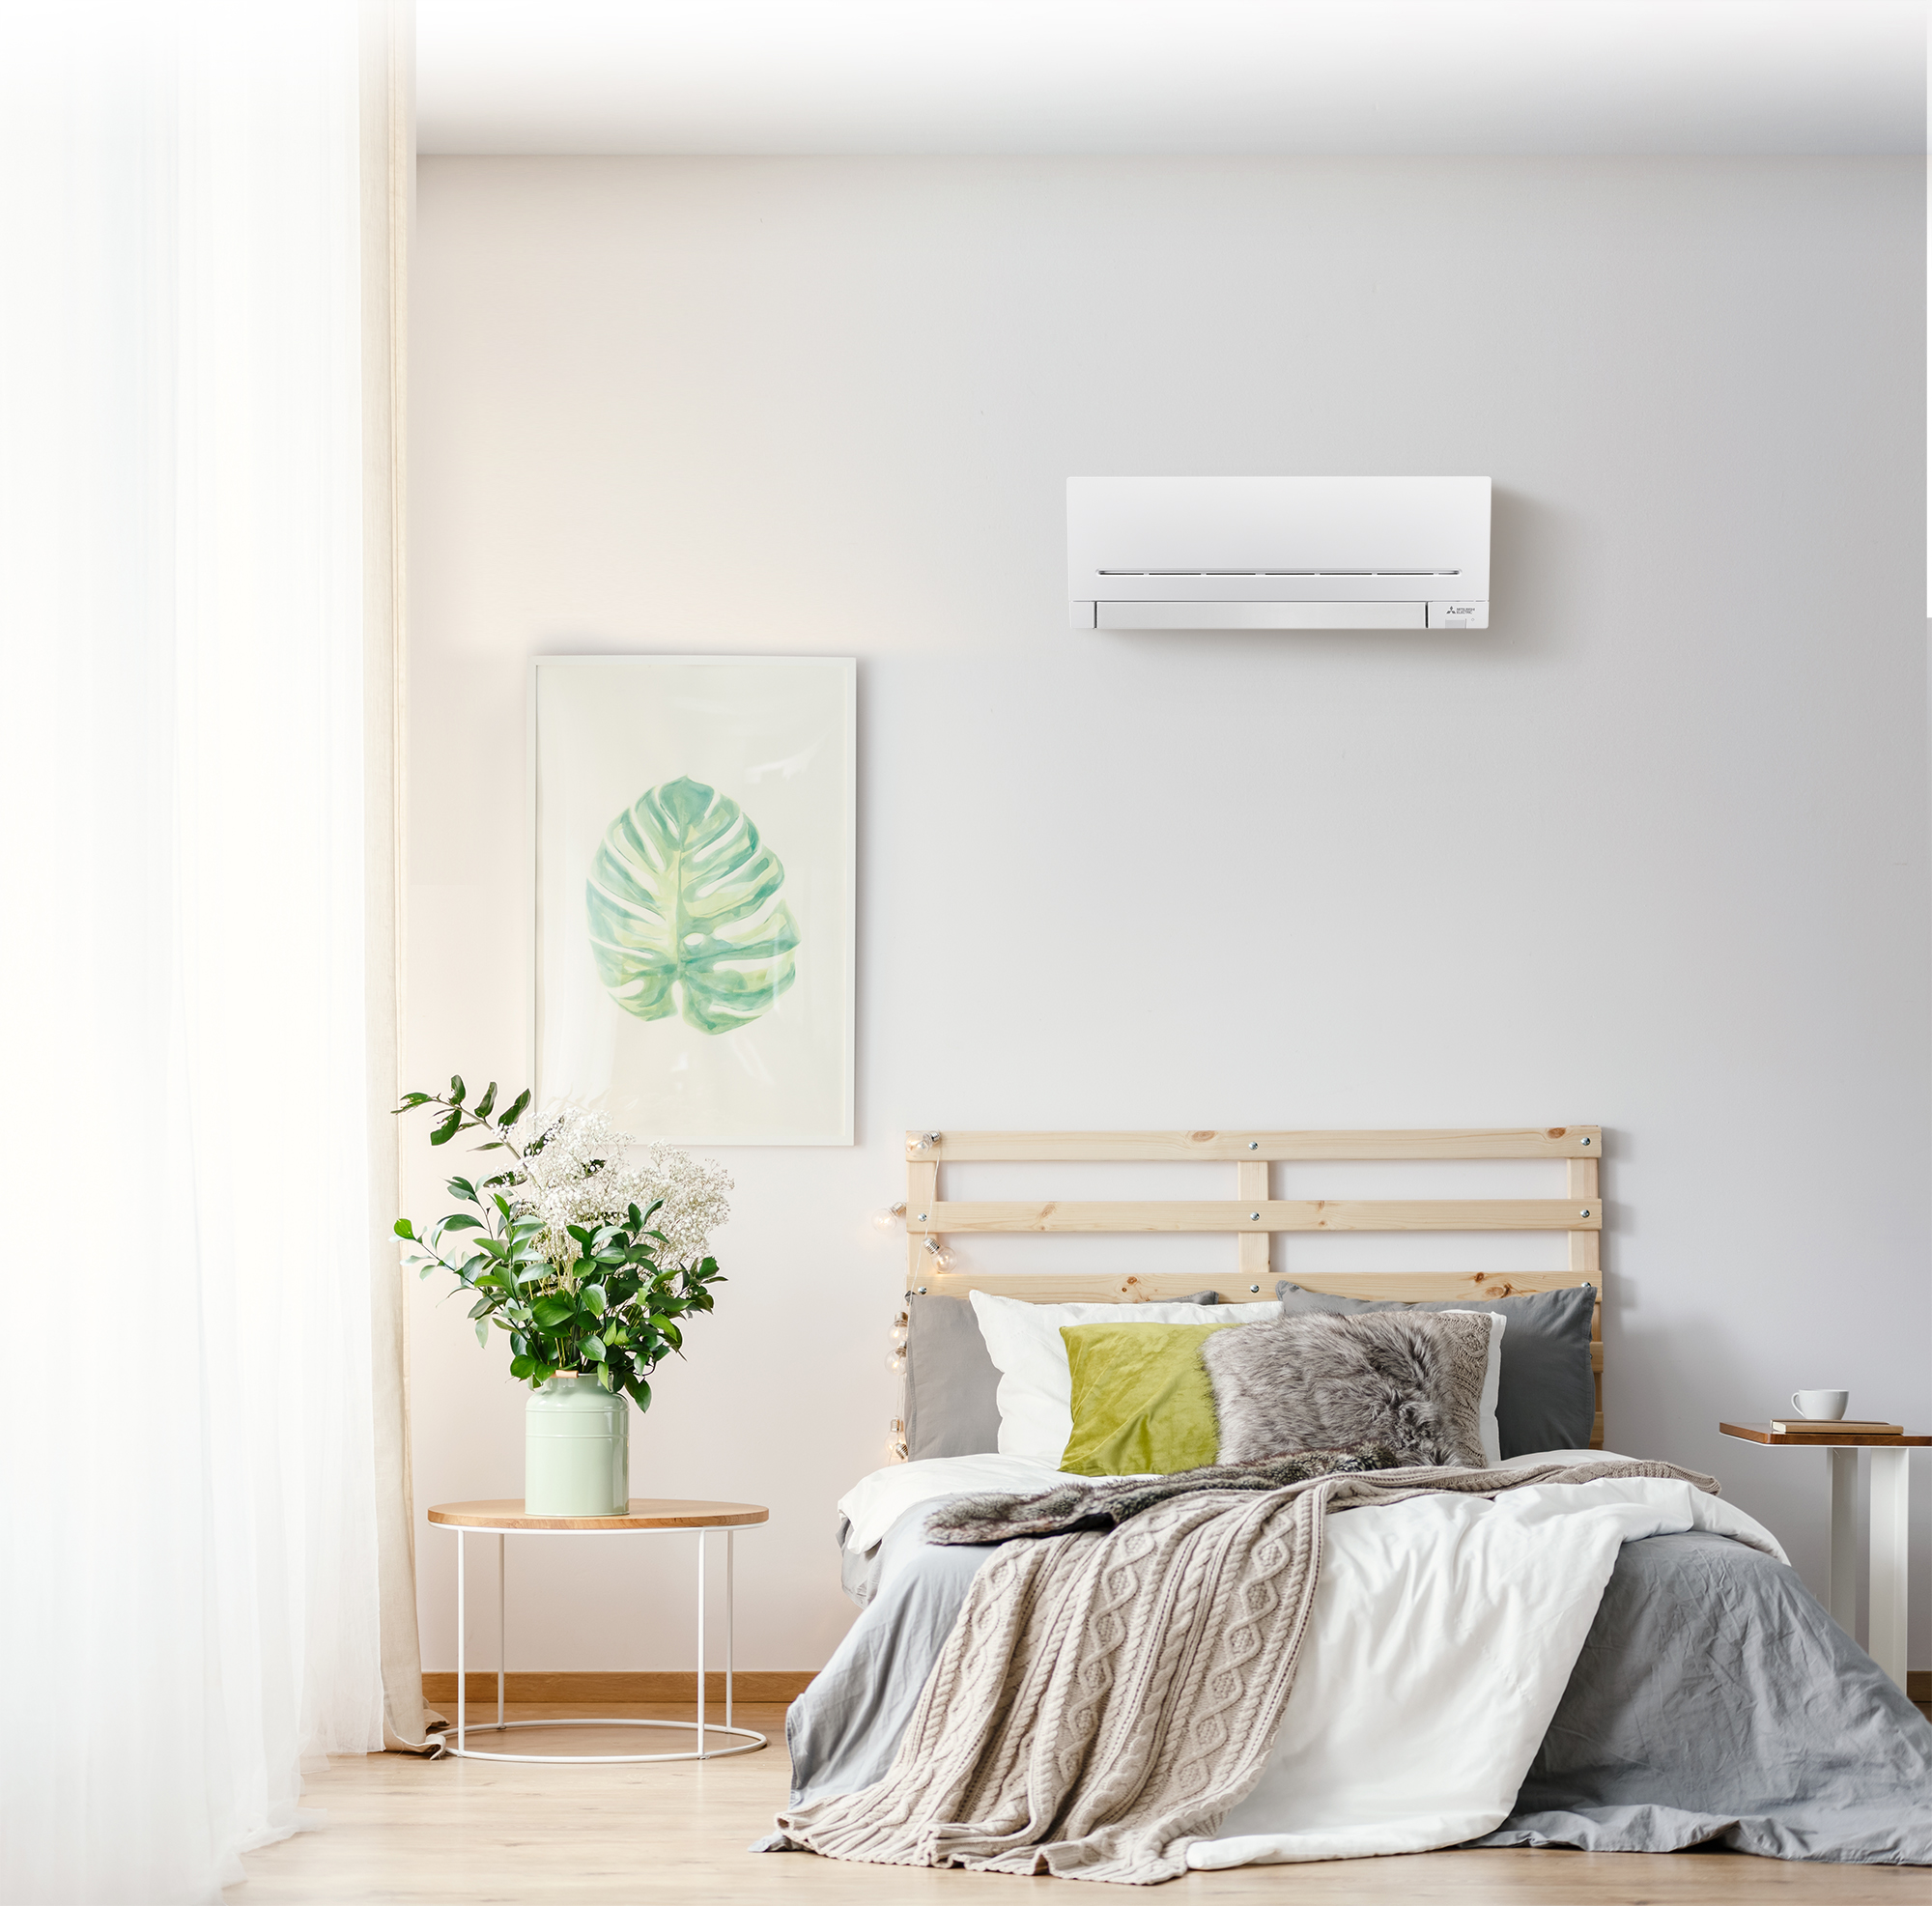 Mitsubishi Heat Pumps by Heat and Cool Auckland - Help choosing the right heat pump for you